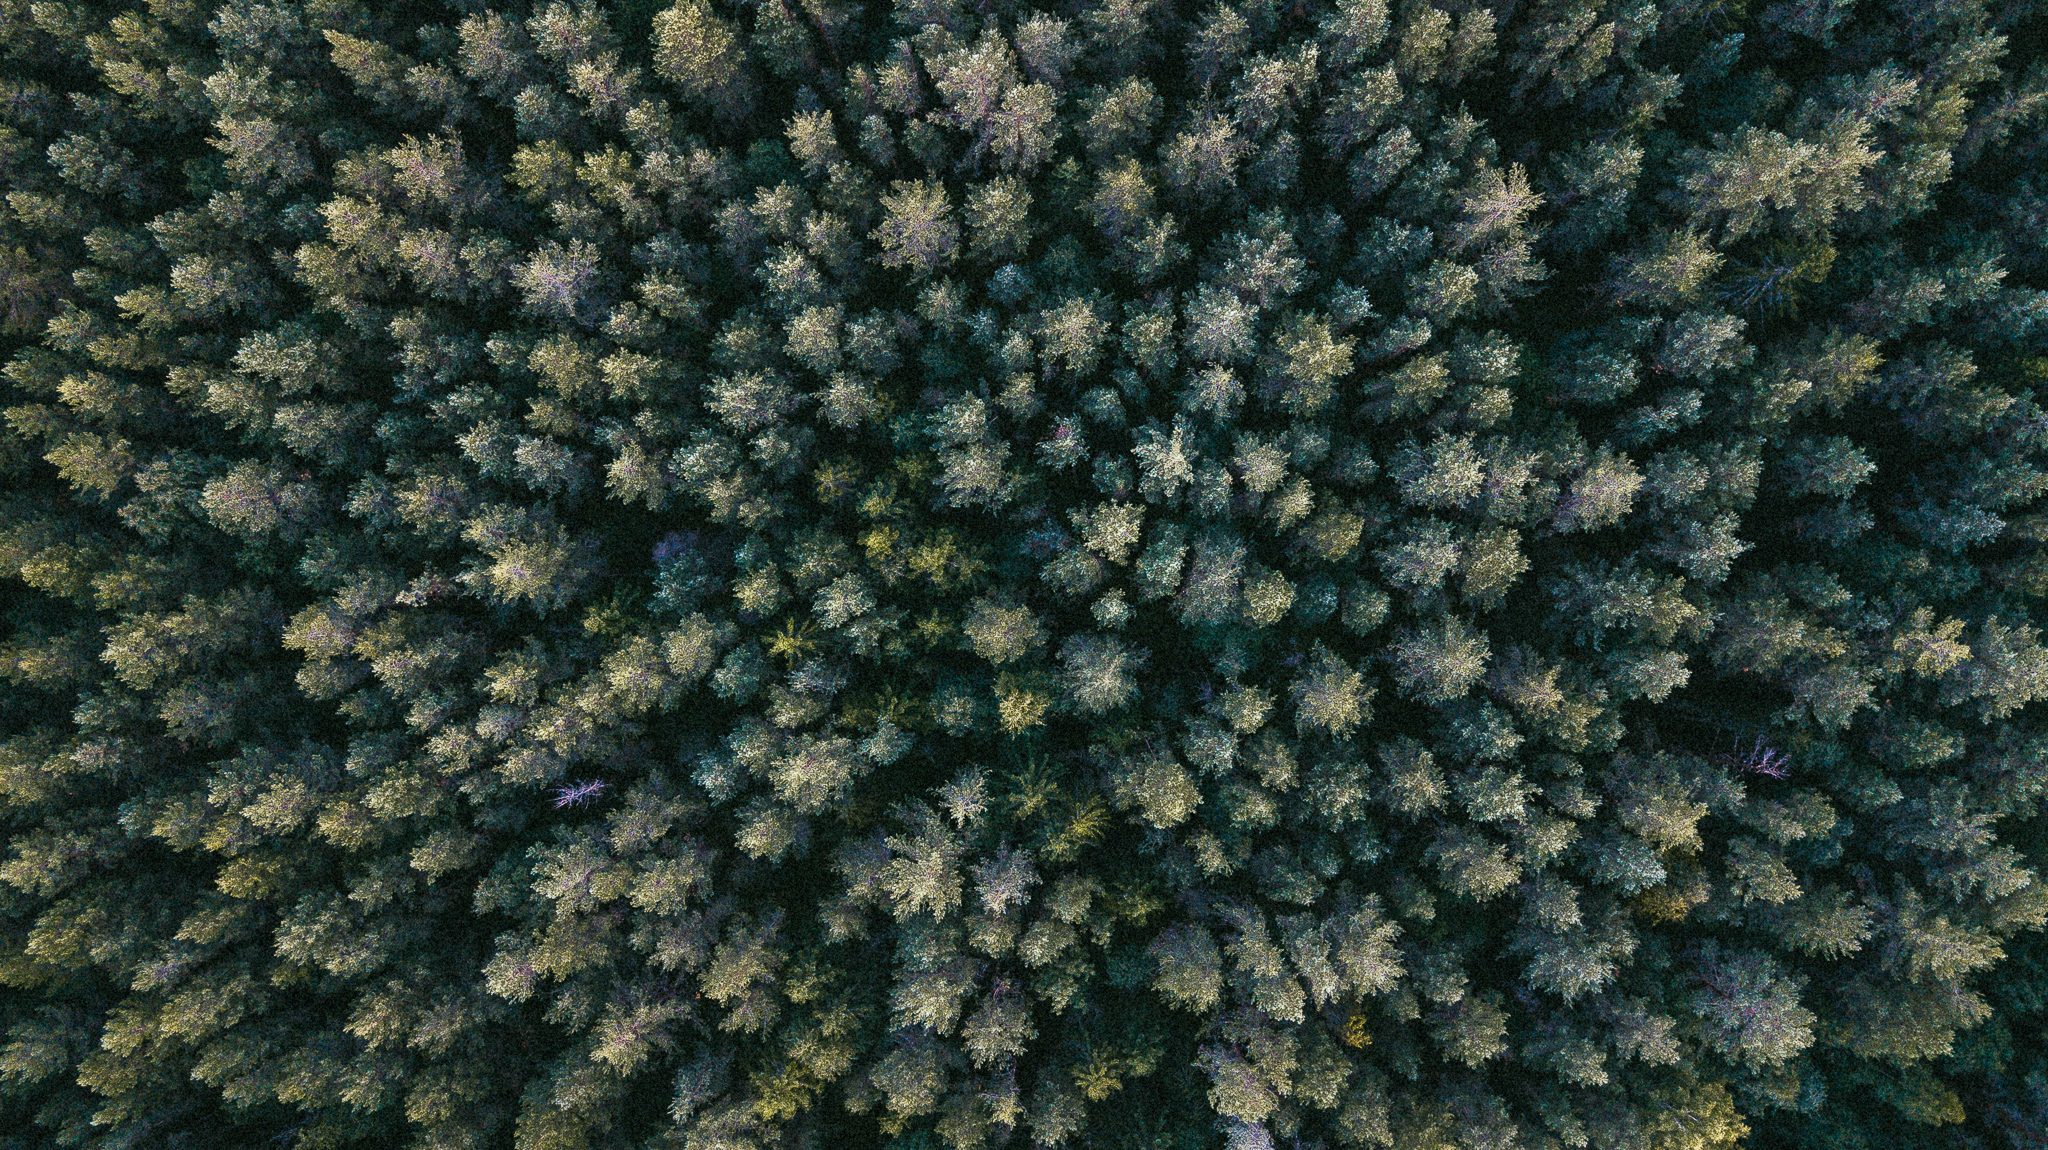 Aerial shot of forest and trees